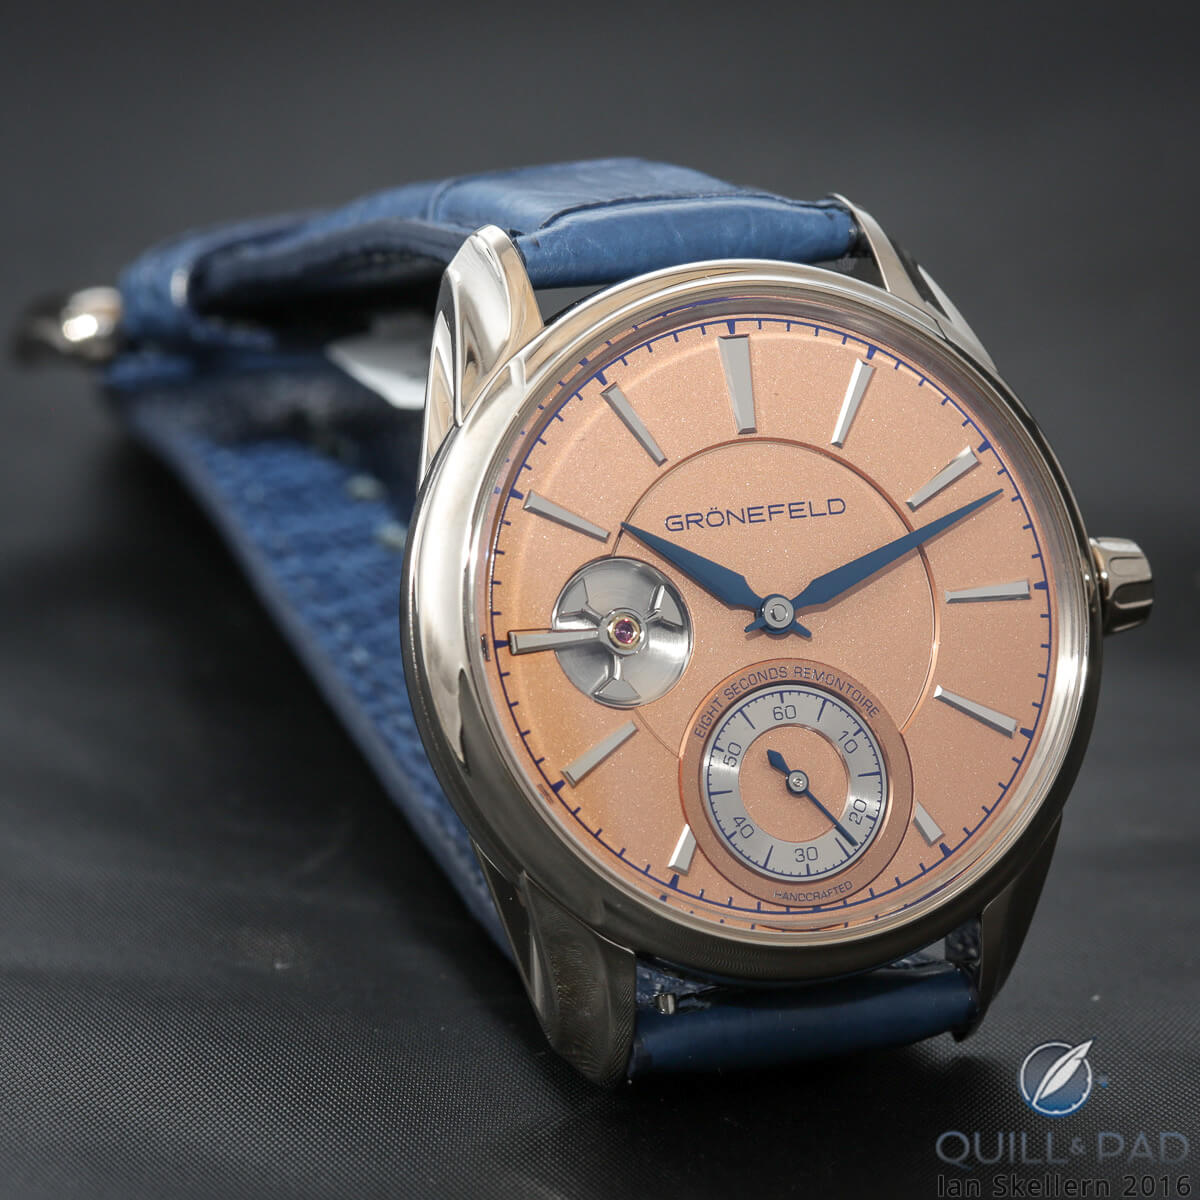 Grönefeld 1941 Remontoire in white gold with salmon-colored dial